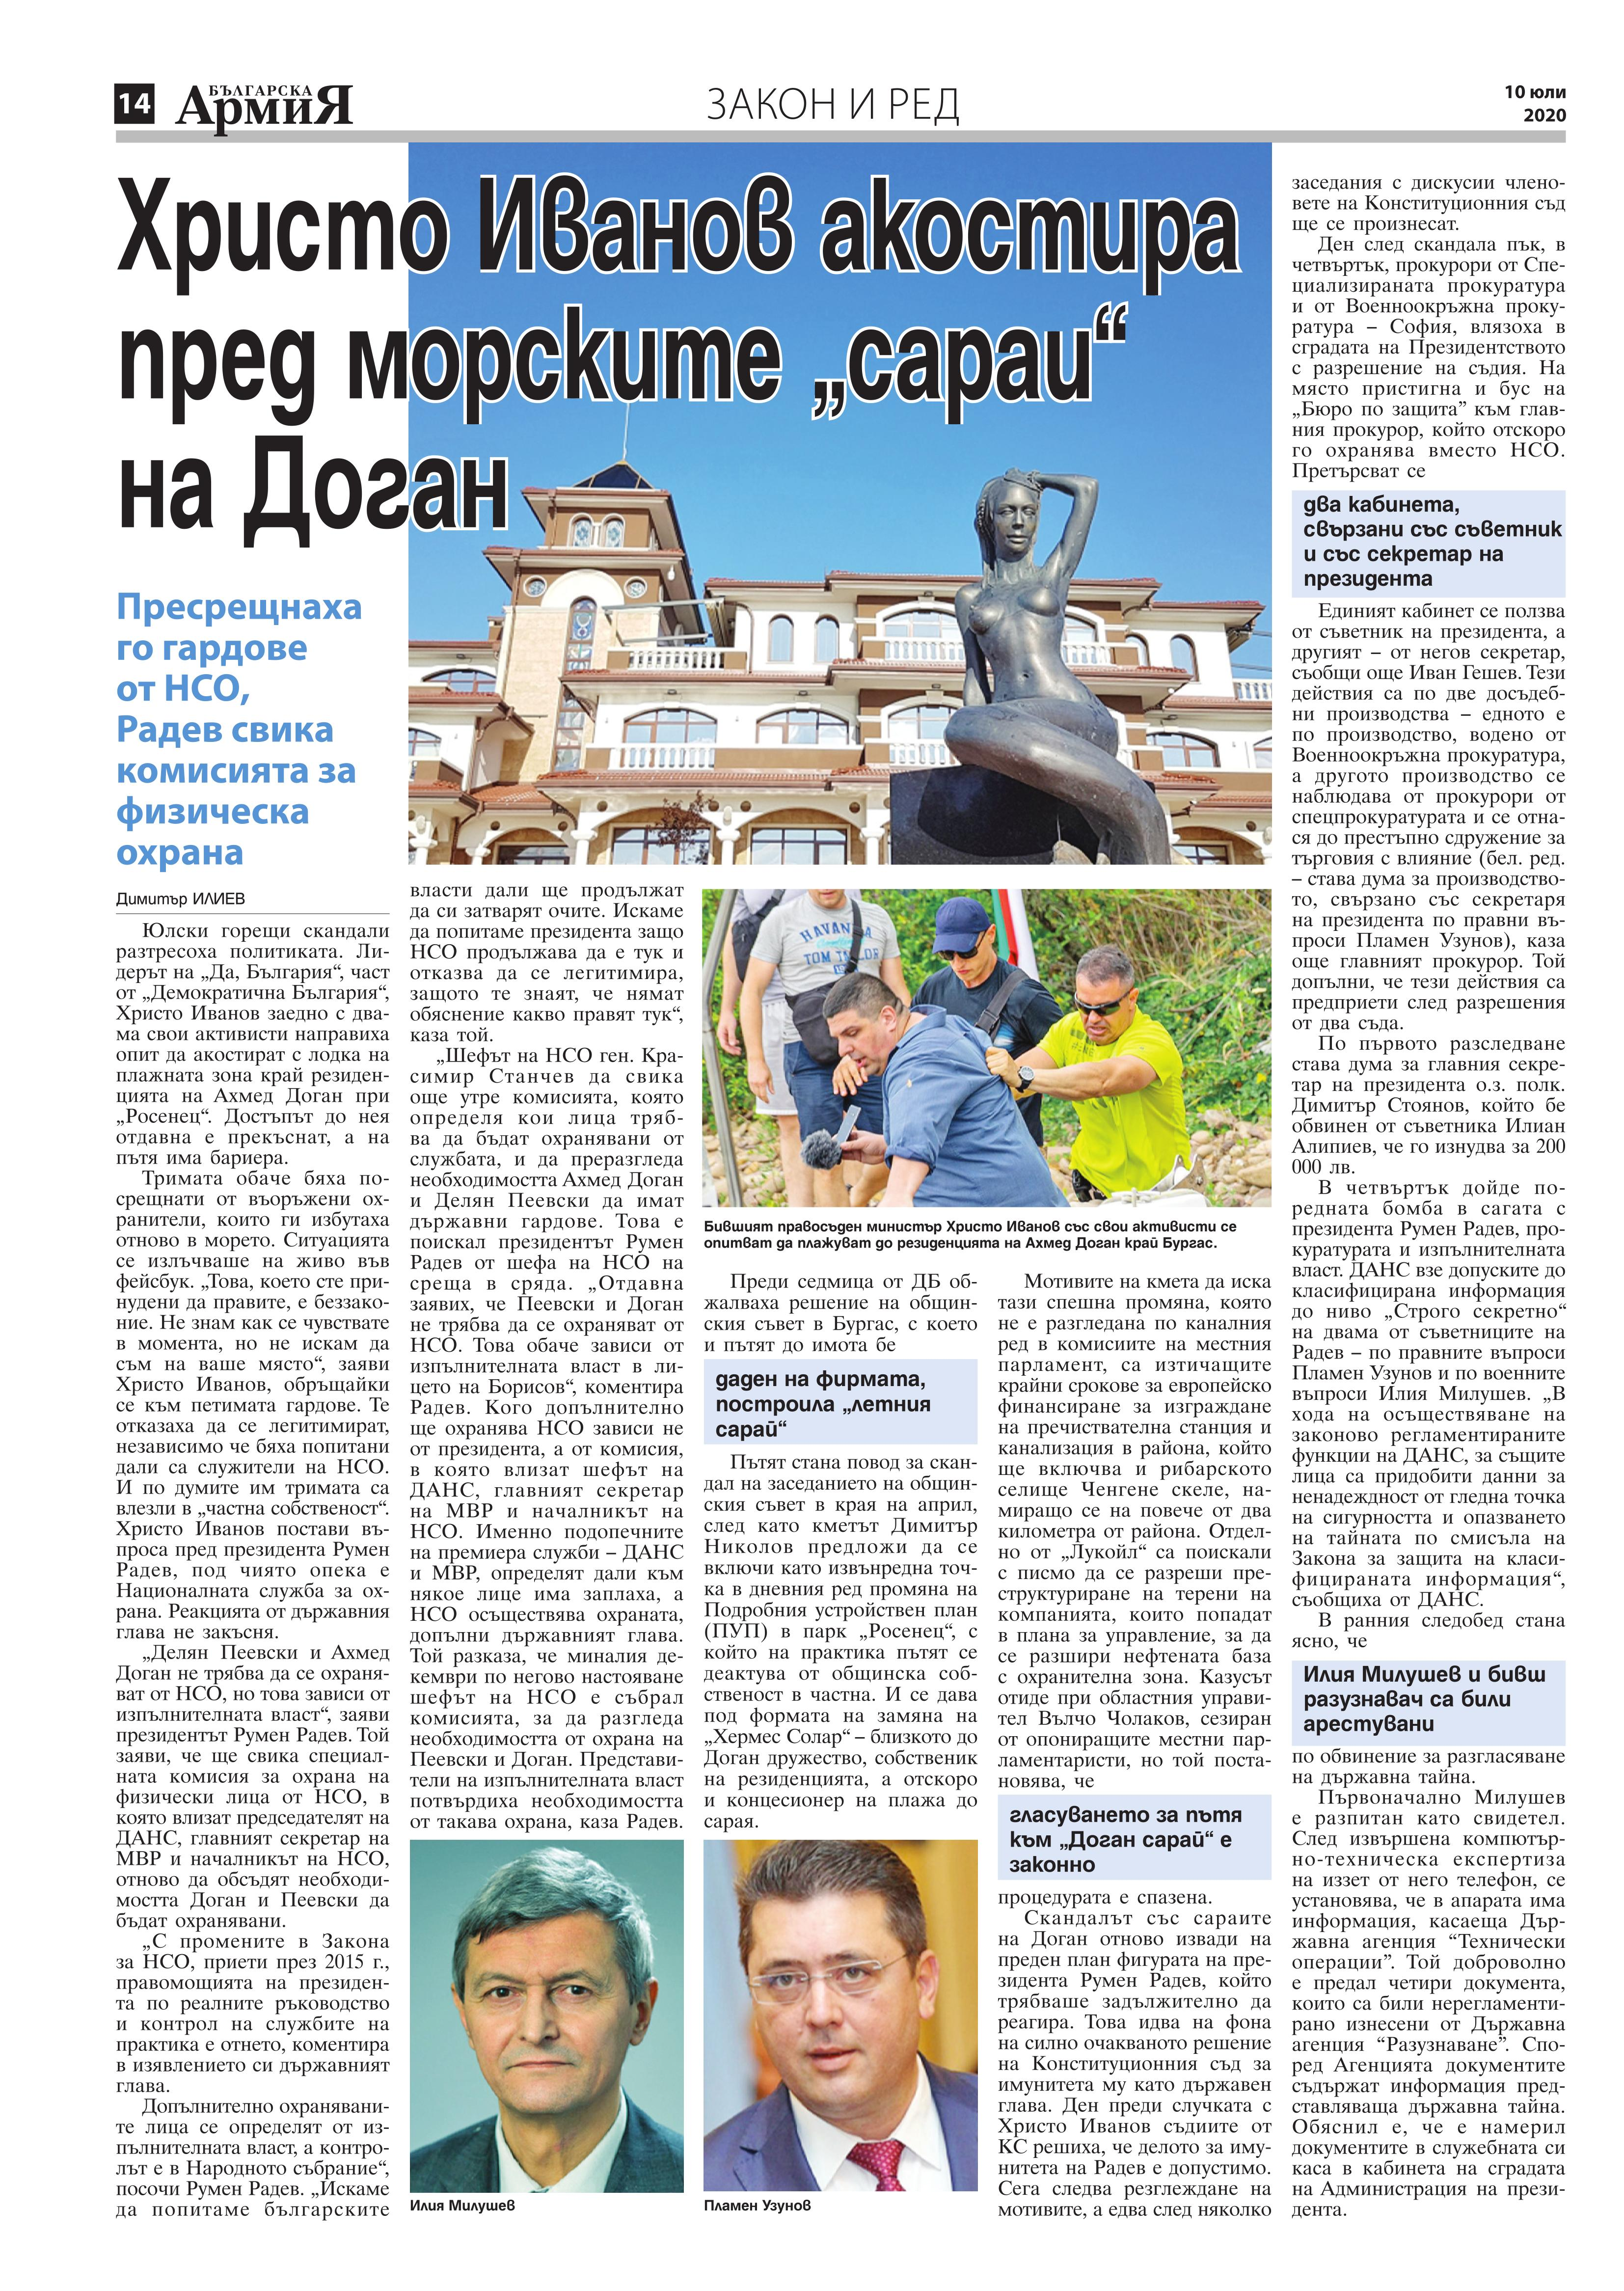 https://www.armymedia.bg/wp-content/uploads/2015/06/14.page1_-146.jpg